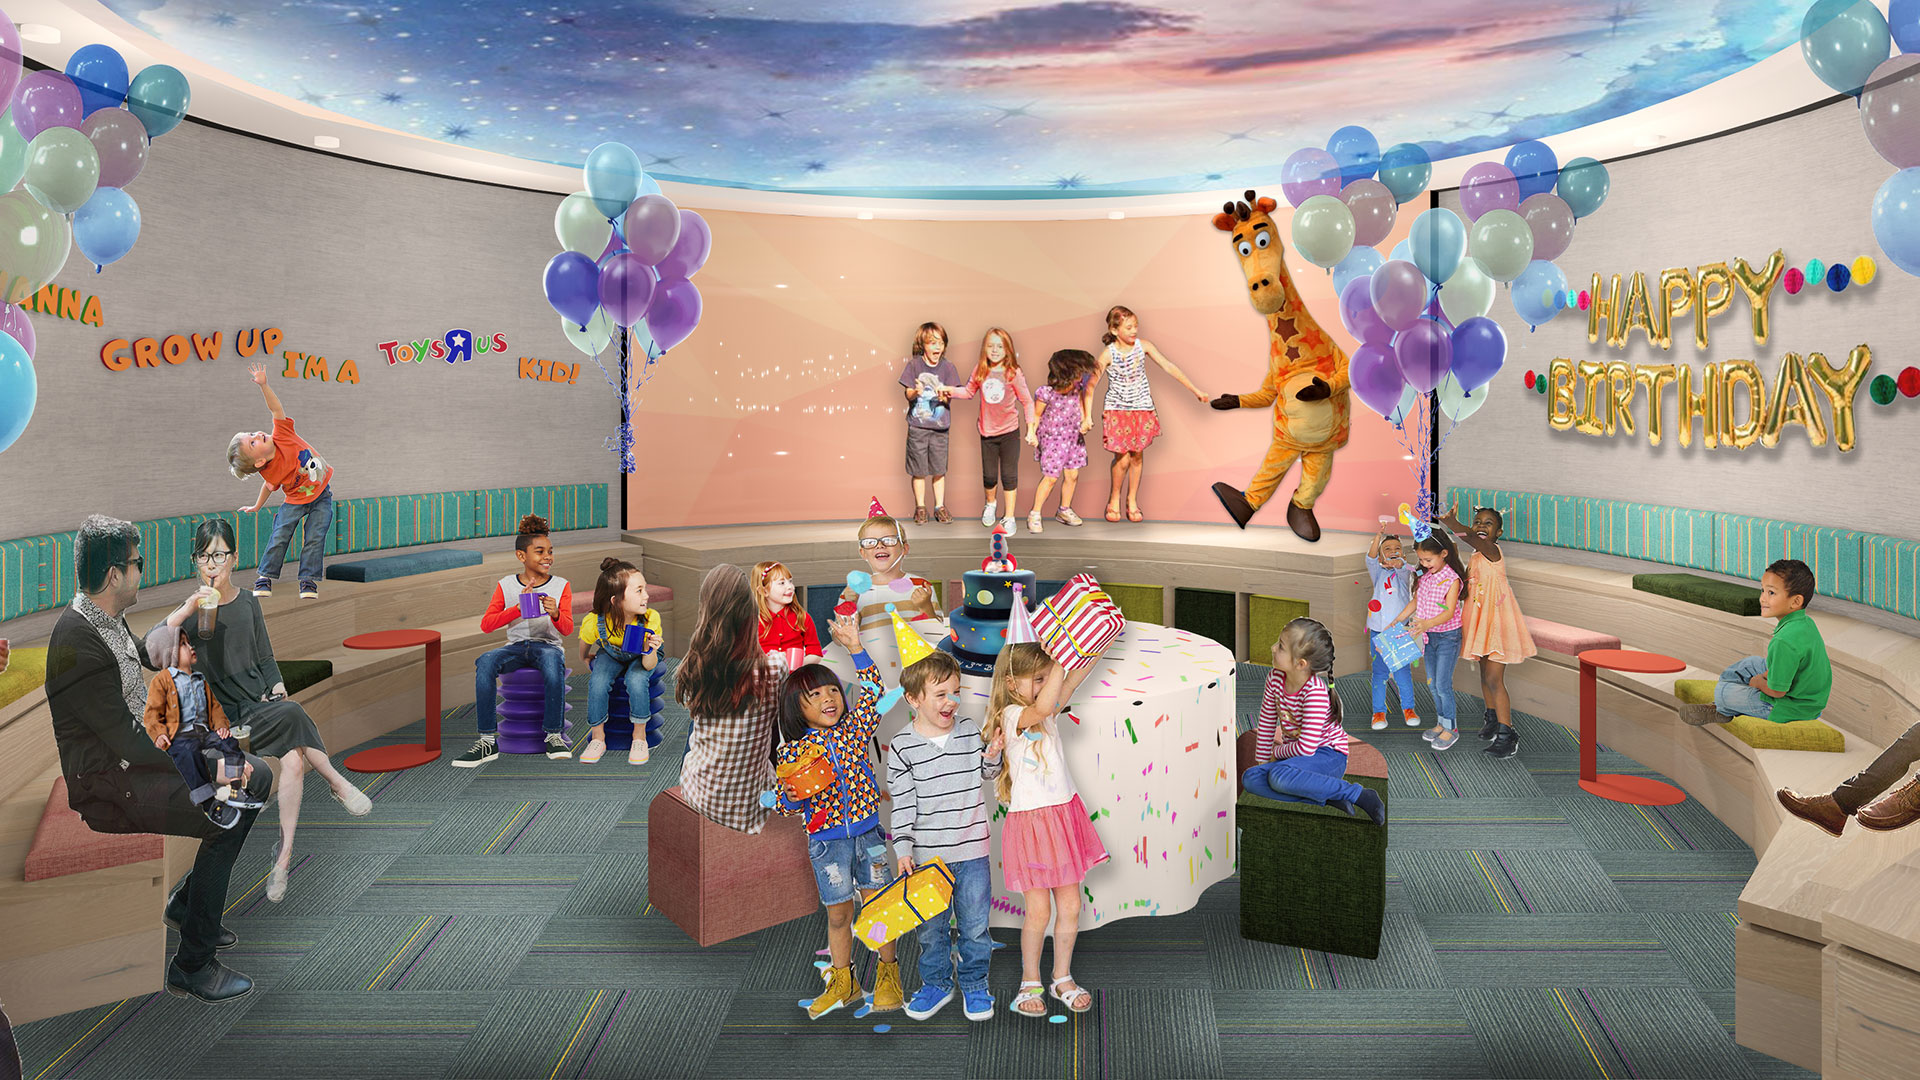 New Toys R Us party and event area